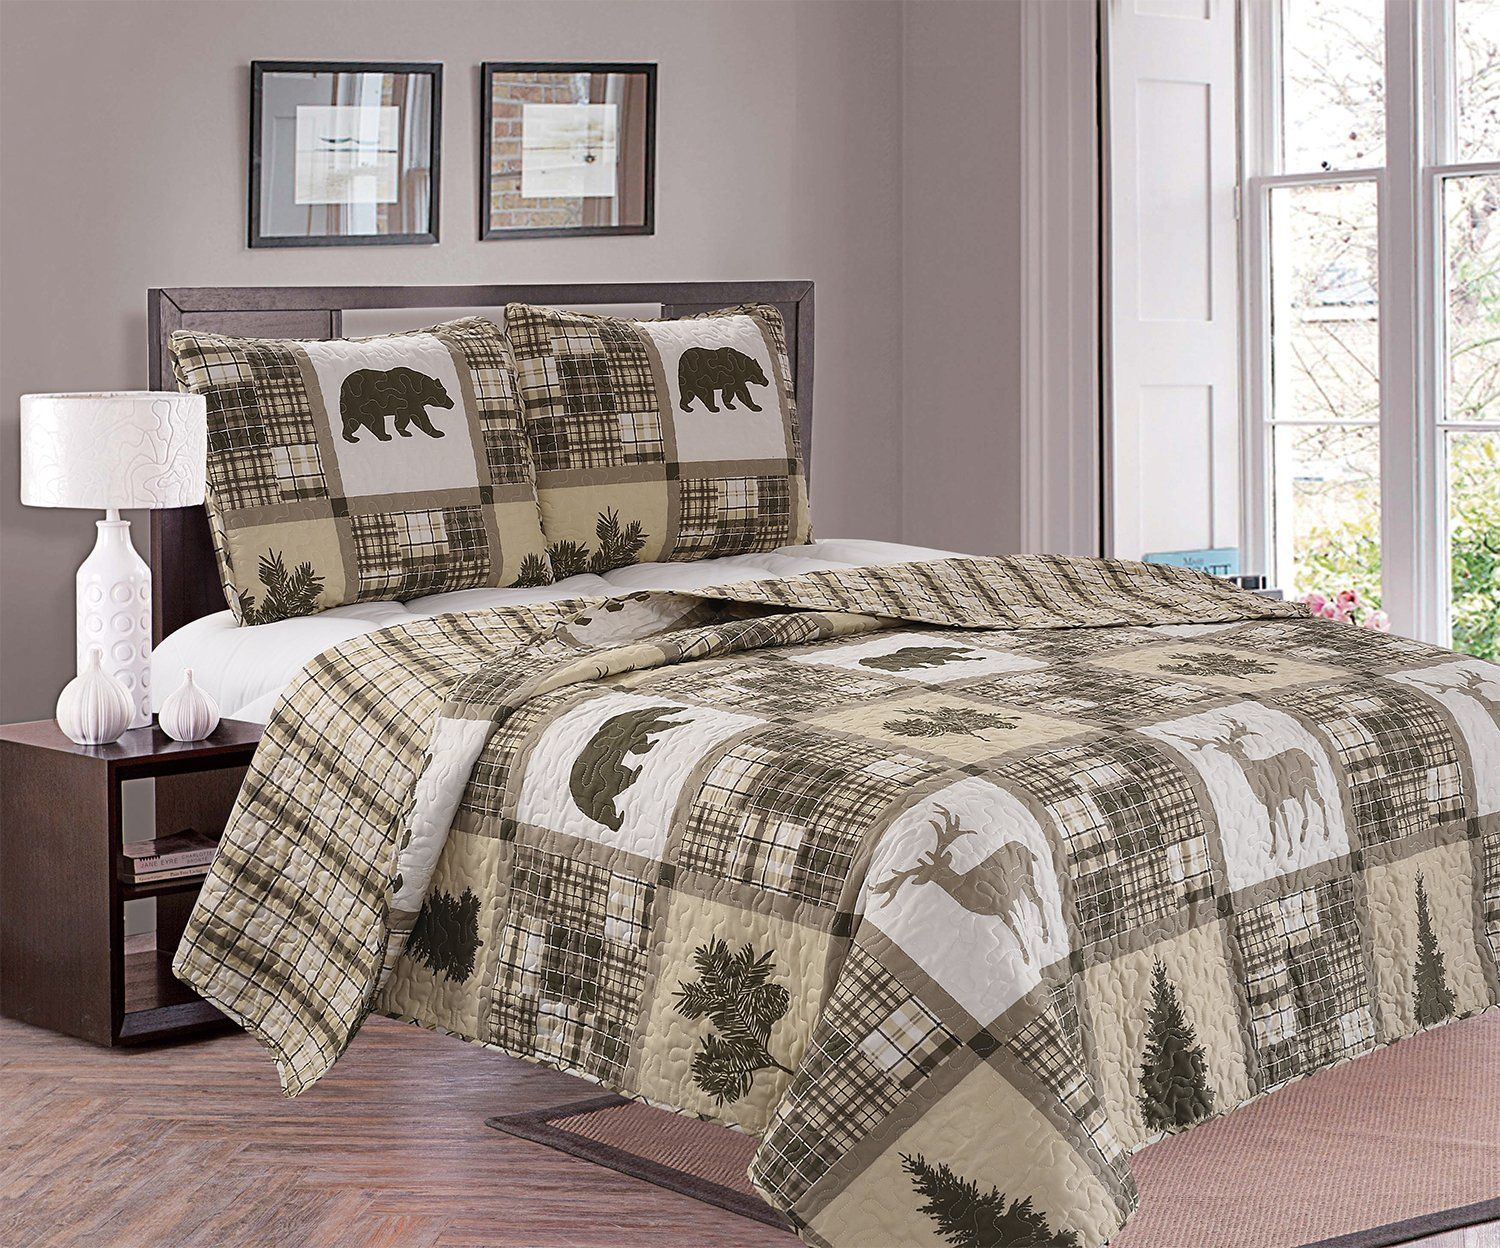 Great Bay Home 3piece Lodge Quilt Set With Shams Durable Cabin Bedspread And Shams With Rustic Printed Pattern Stonehurst Co Coverlet Bedding Home Quilt Sets